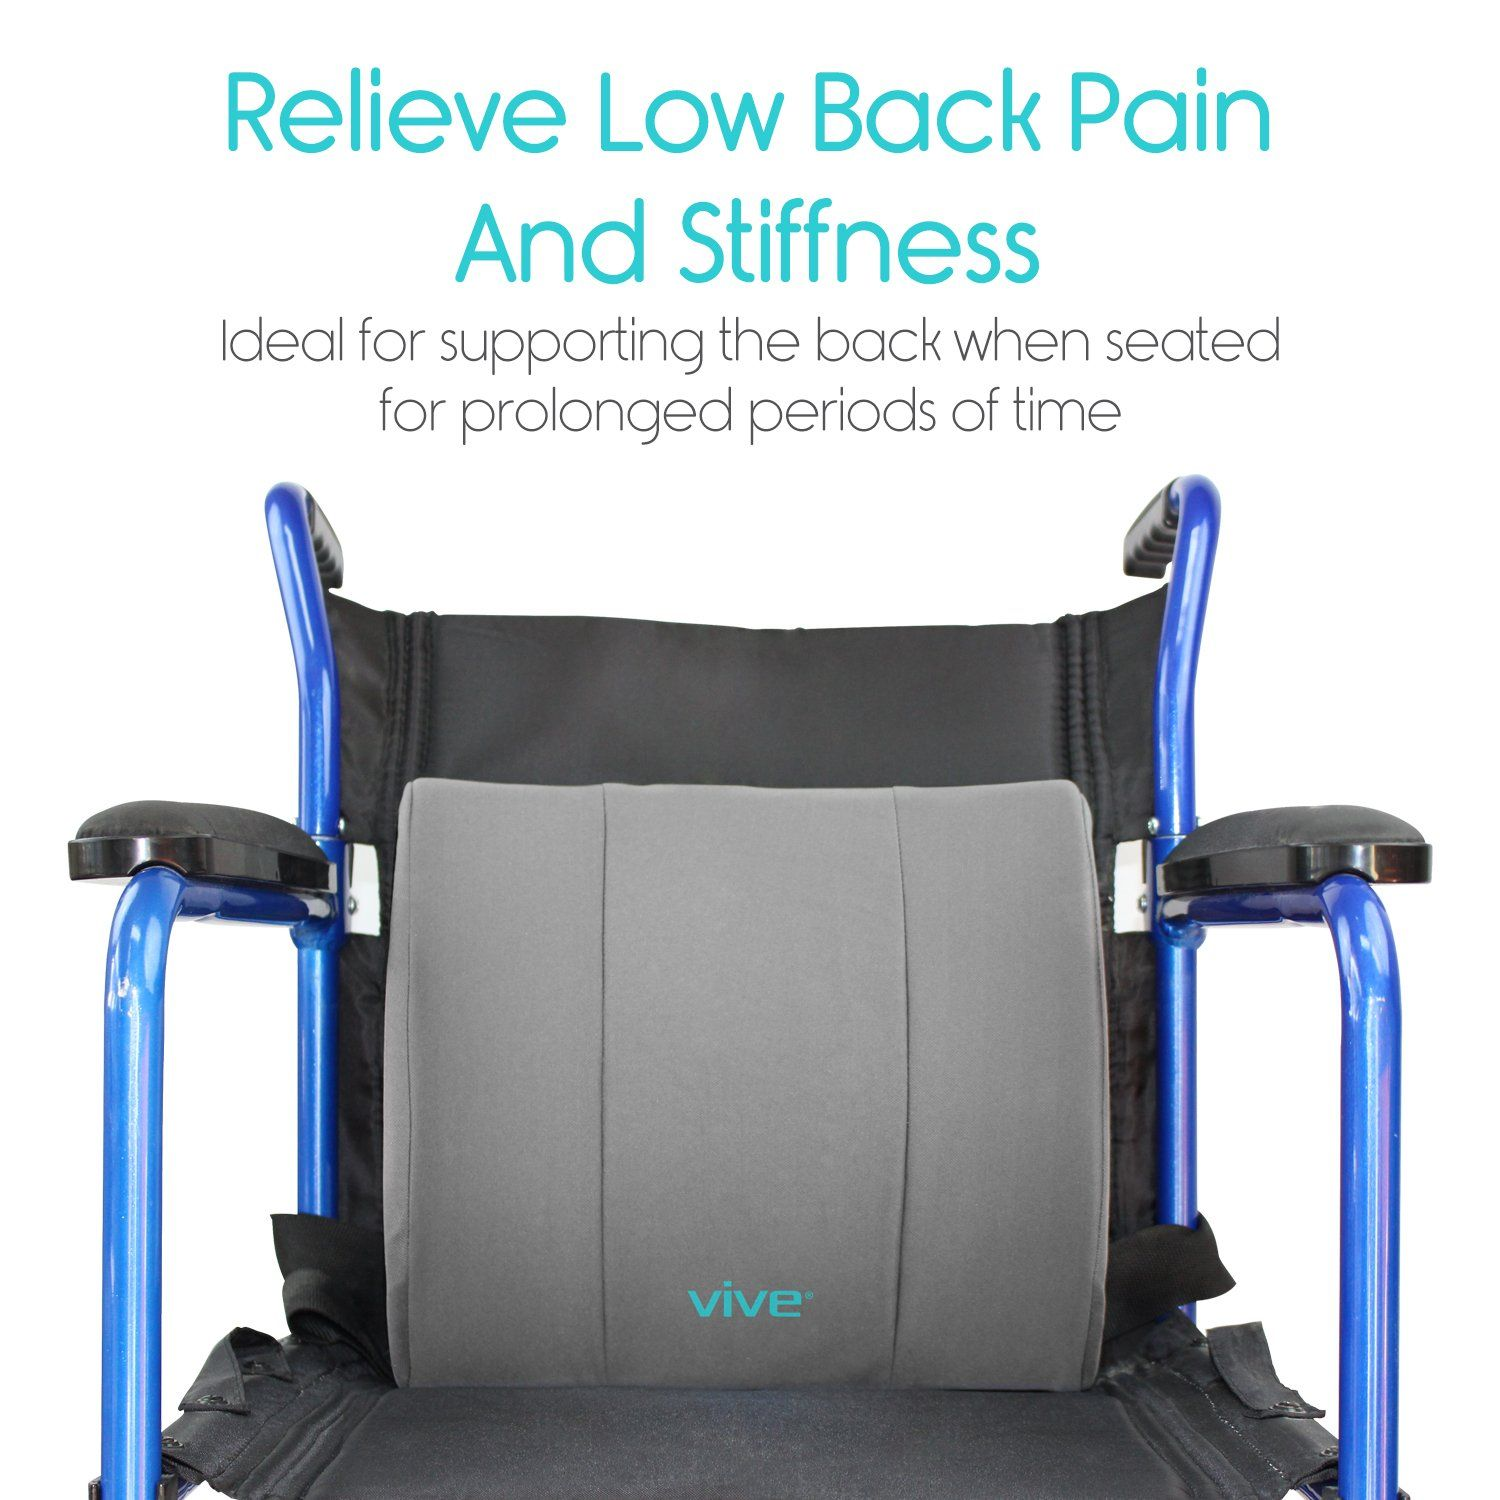 Enjoyable Lumbar Support Pillow By Vive Lower Back Seat Cushion For Evergreenethics Interior Chair Design Evergreenethicsorg